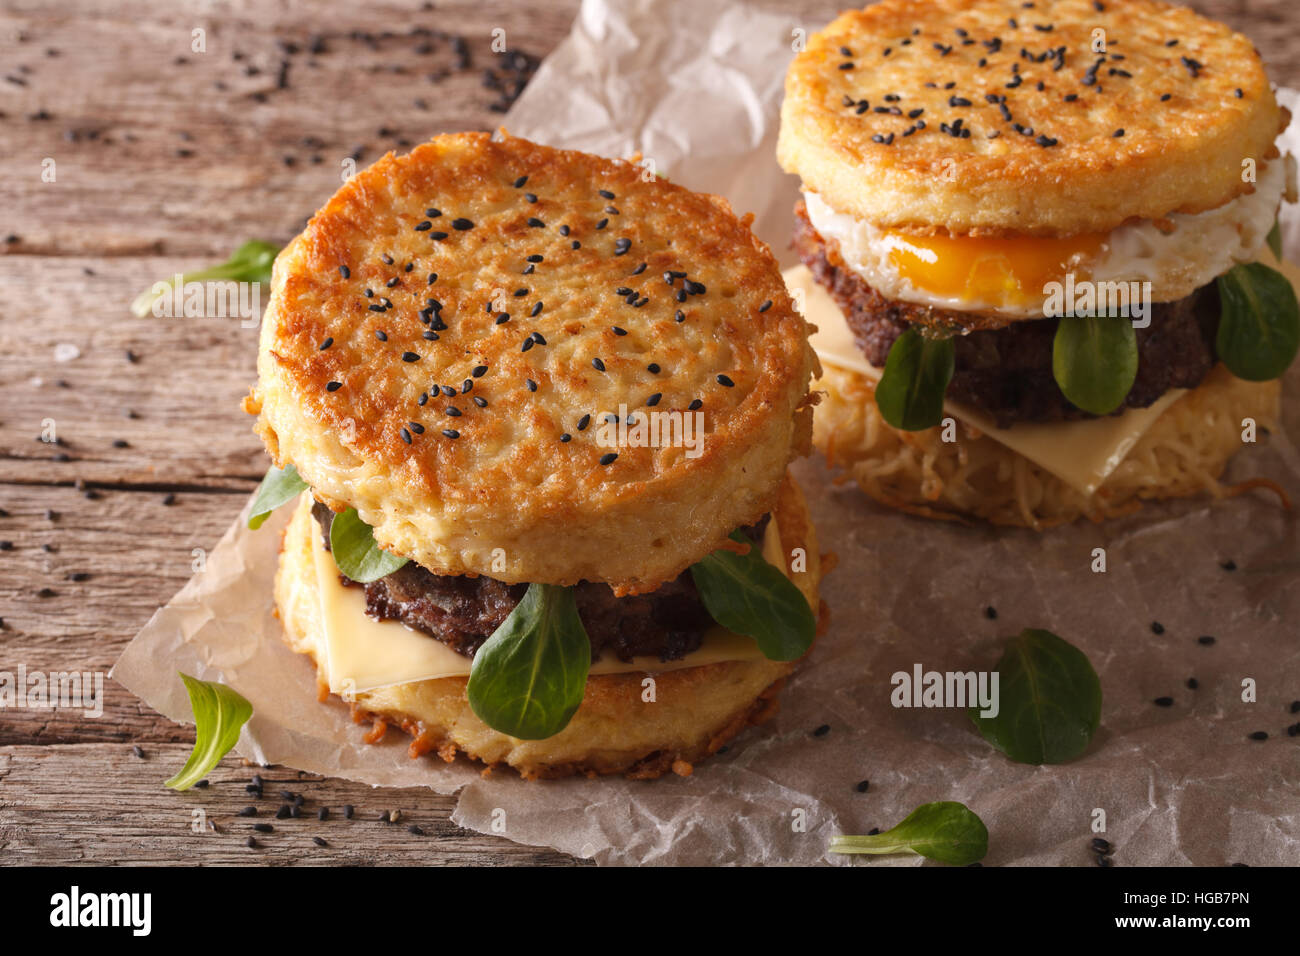 Ramen burgers with beef and egg on a paper on a wooden table. Horizontal - Stock Image